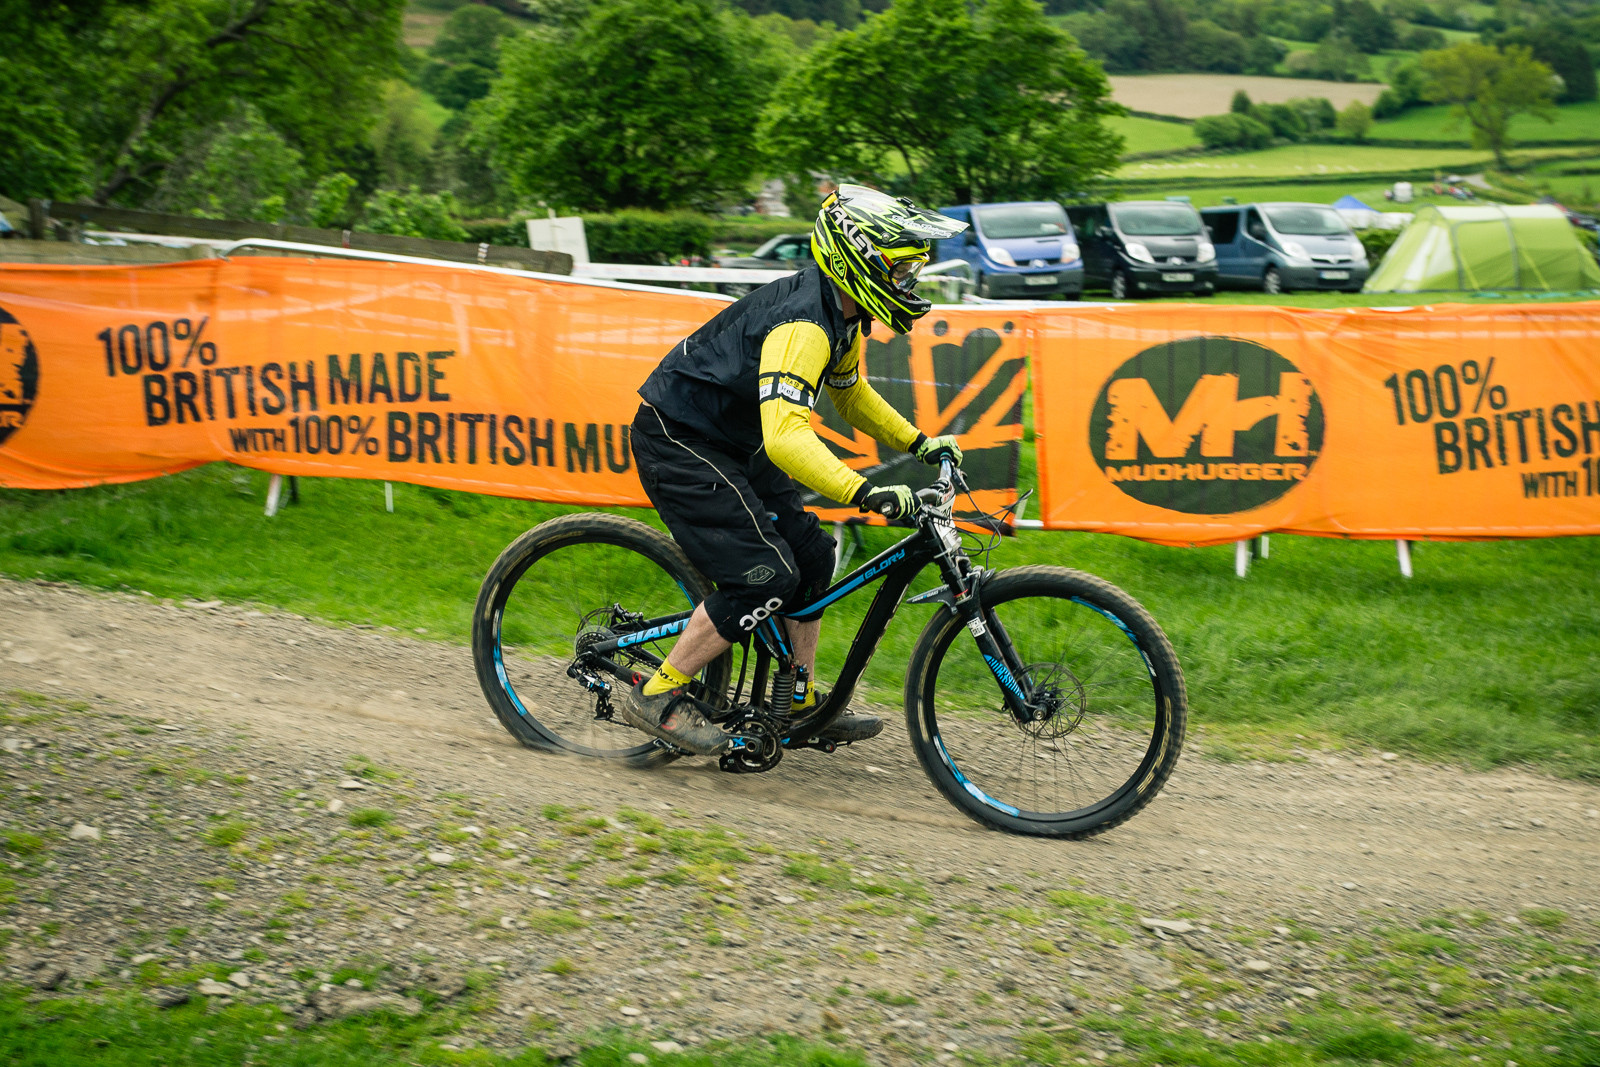 Giant Glory G-ed Out at Llangollen - G-Out Project - Llangollen BDS 2015 - Mountain Biking Pictures - Vital MTB